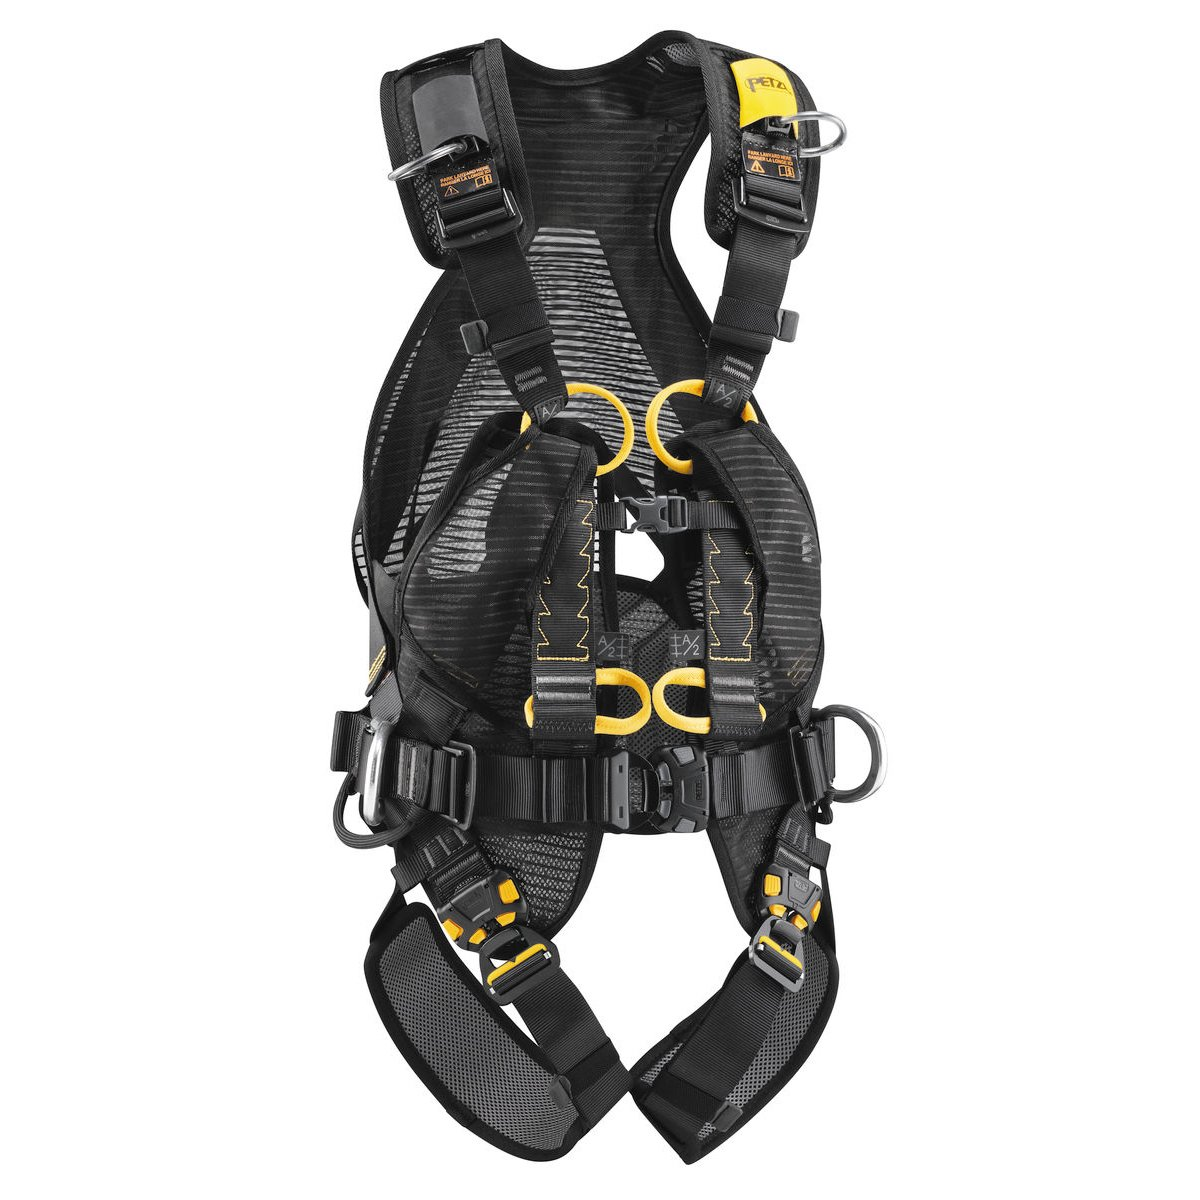 Petzl VOLT full body harness with OXAN TRIACT-LOCK Carabiner CSA Size 2 by Petzl